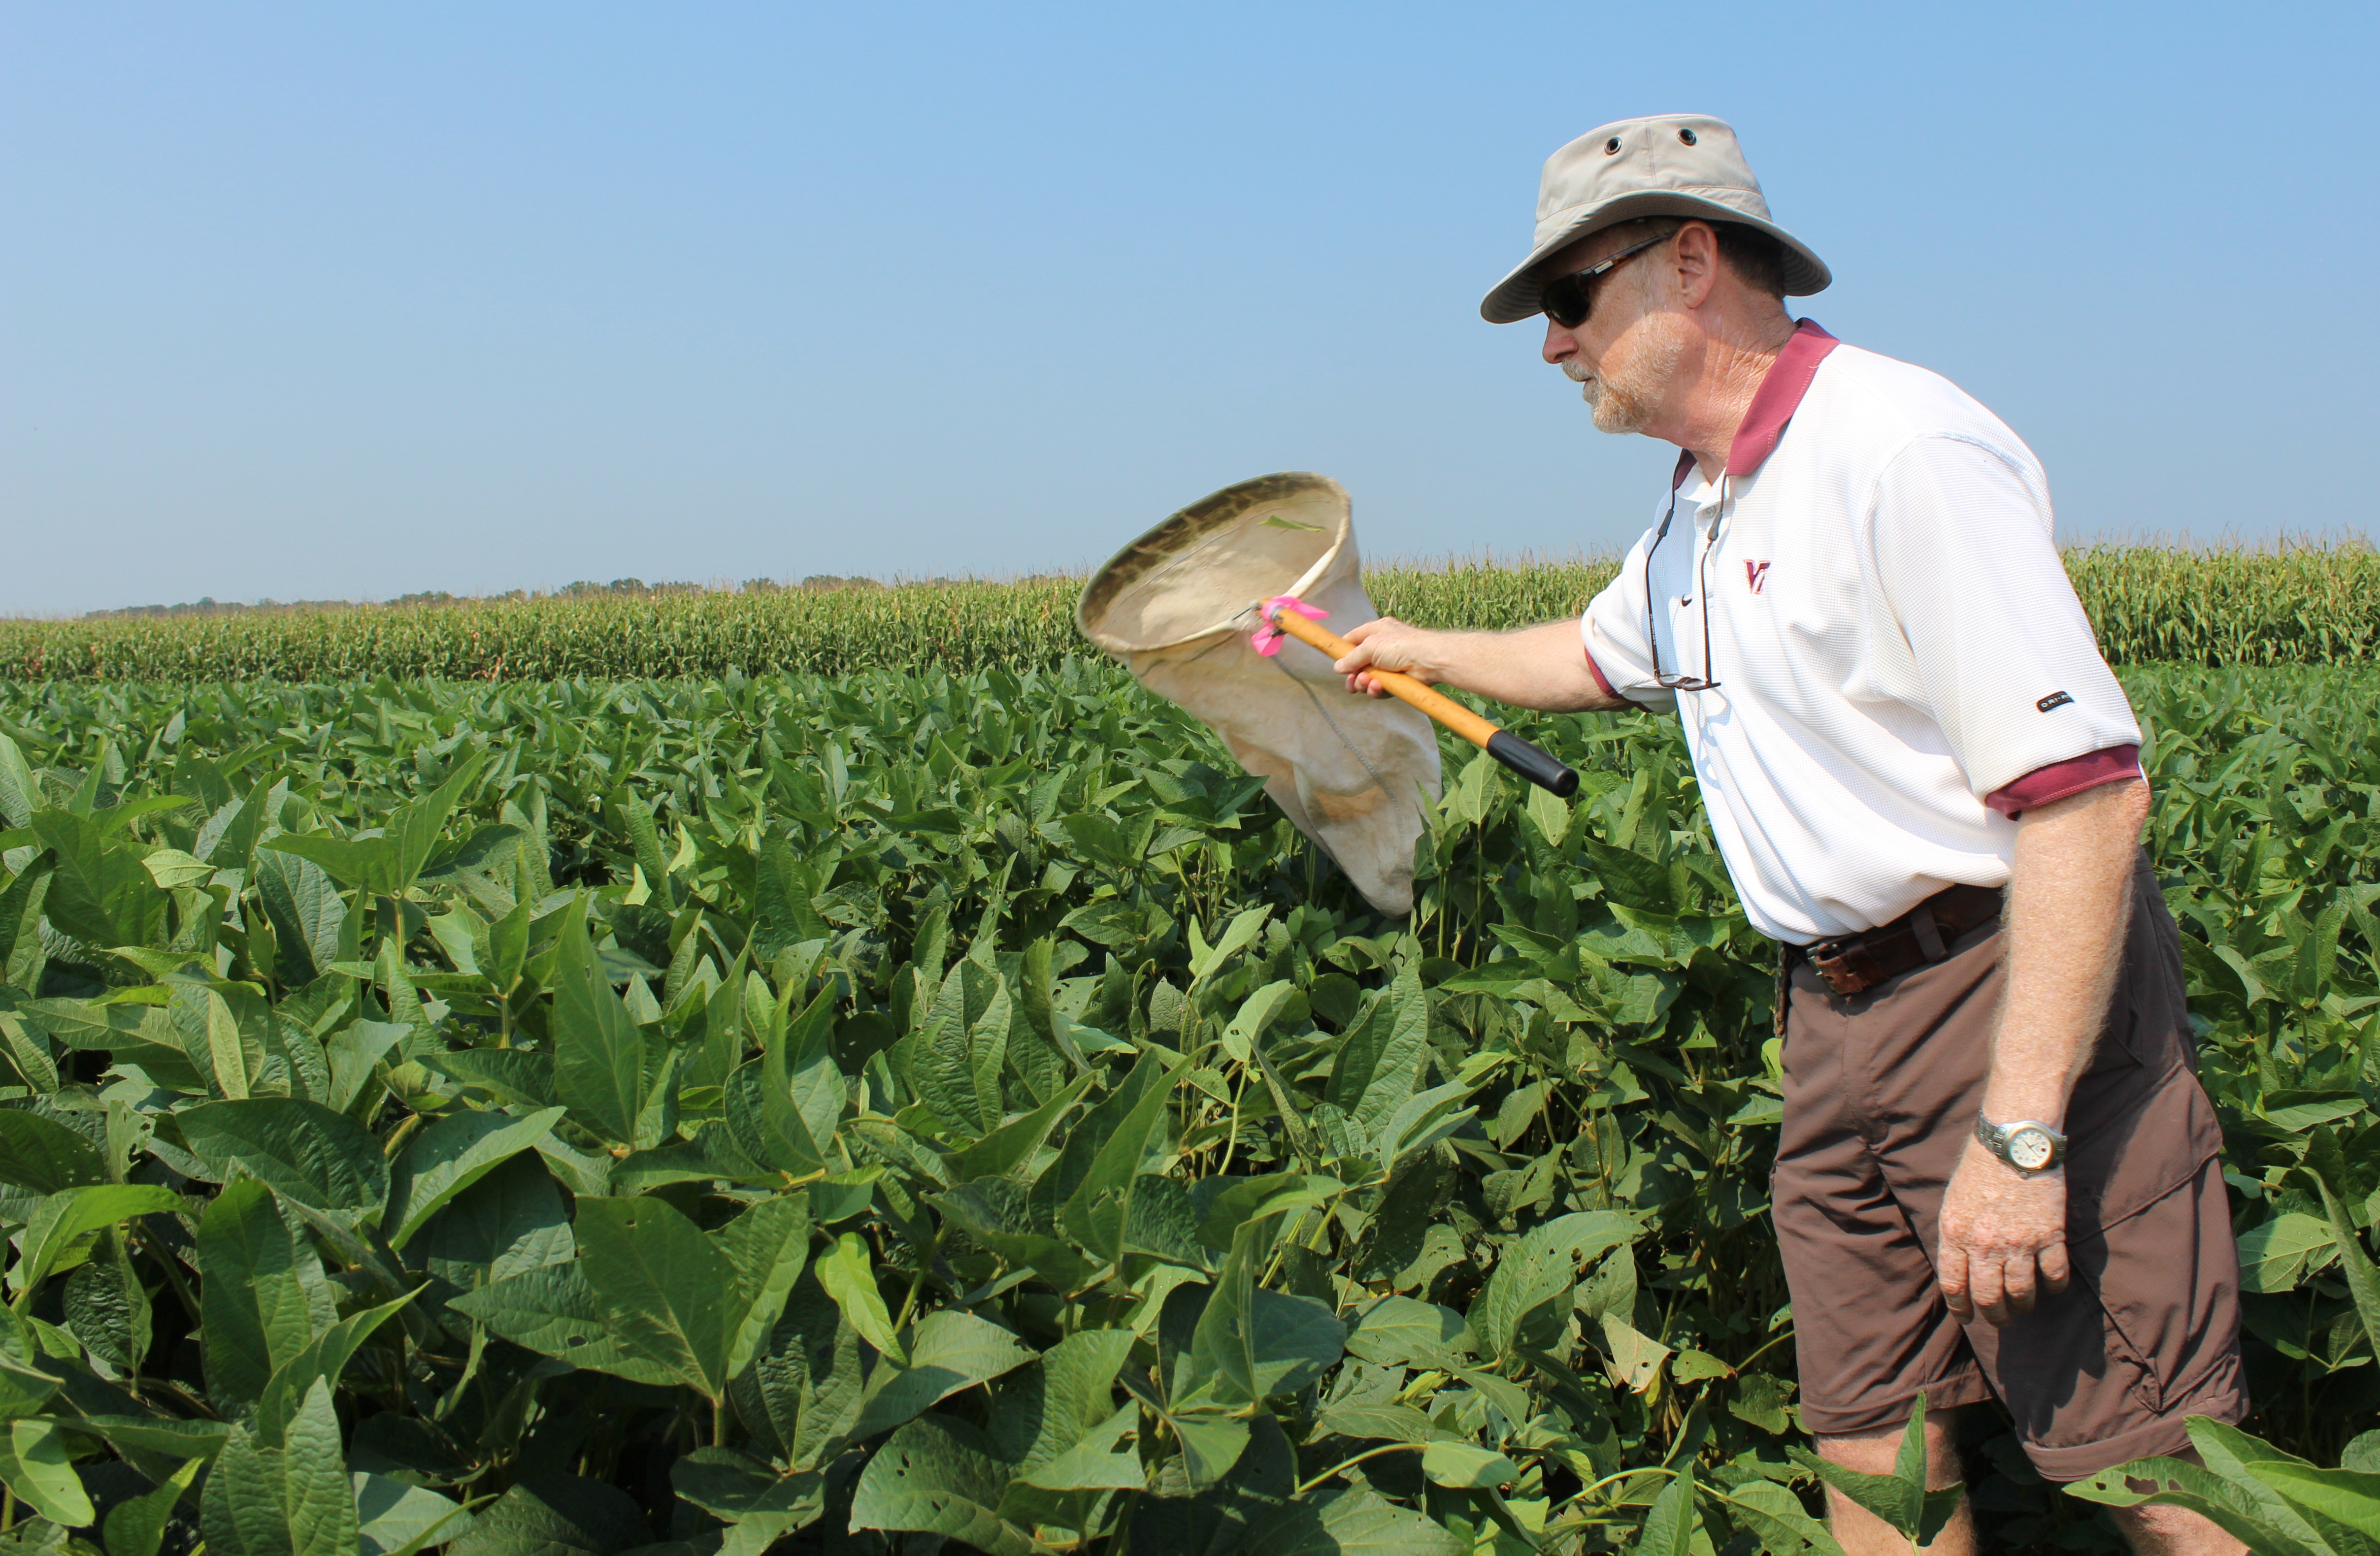 Sweeping a soy bean field for brown marmorated stink bugs